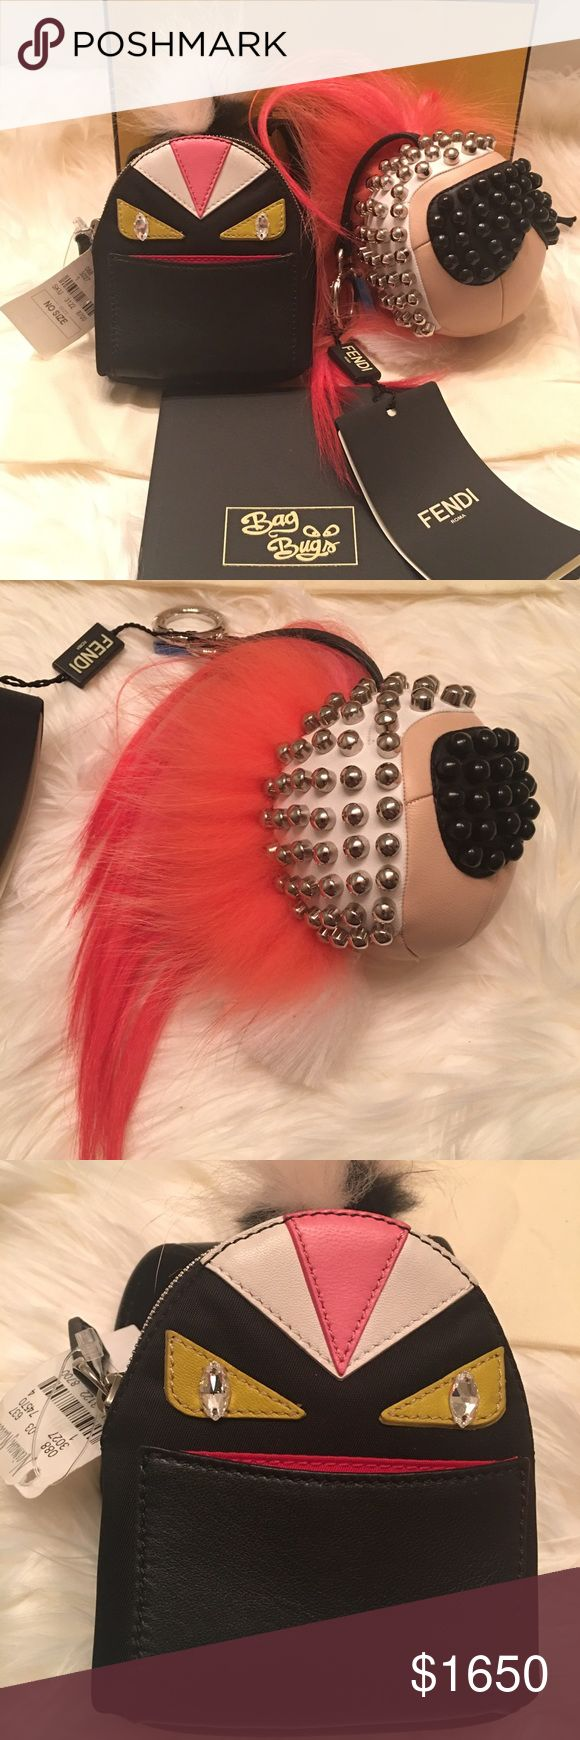 """FENDI Bug Monster Backpack & Karlito Bag Charms A bundle of two authentic Fendi XL bag charms - both measure 3.5"""" wide. NWT from Neimans, one came with the dust bag Bd pamphlet and the other the Fendi box. Fendi Bags"""